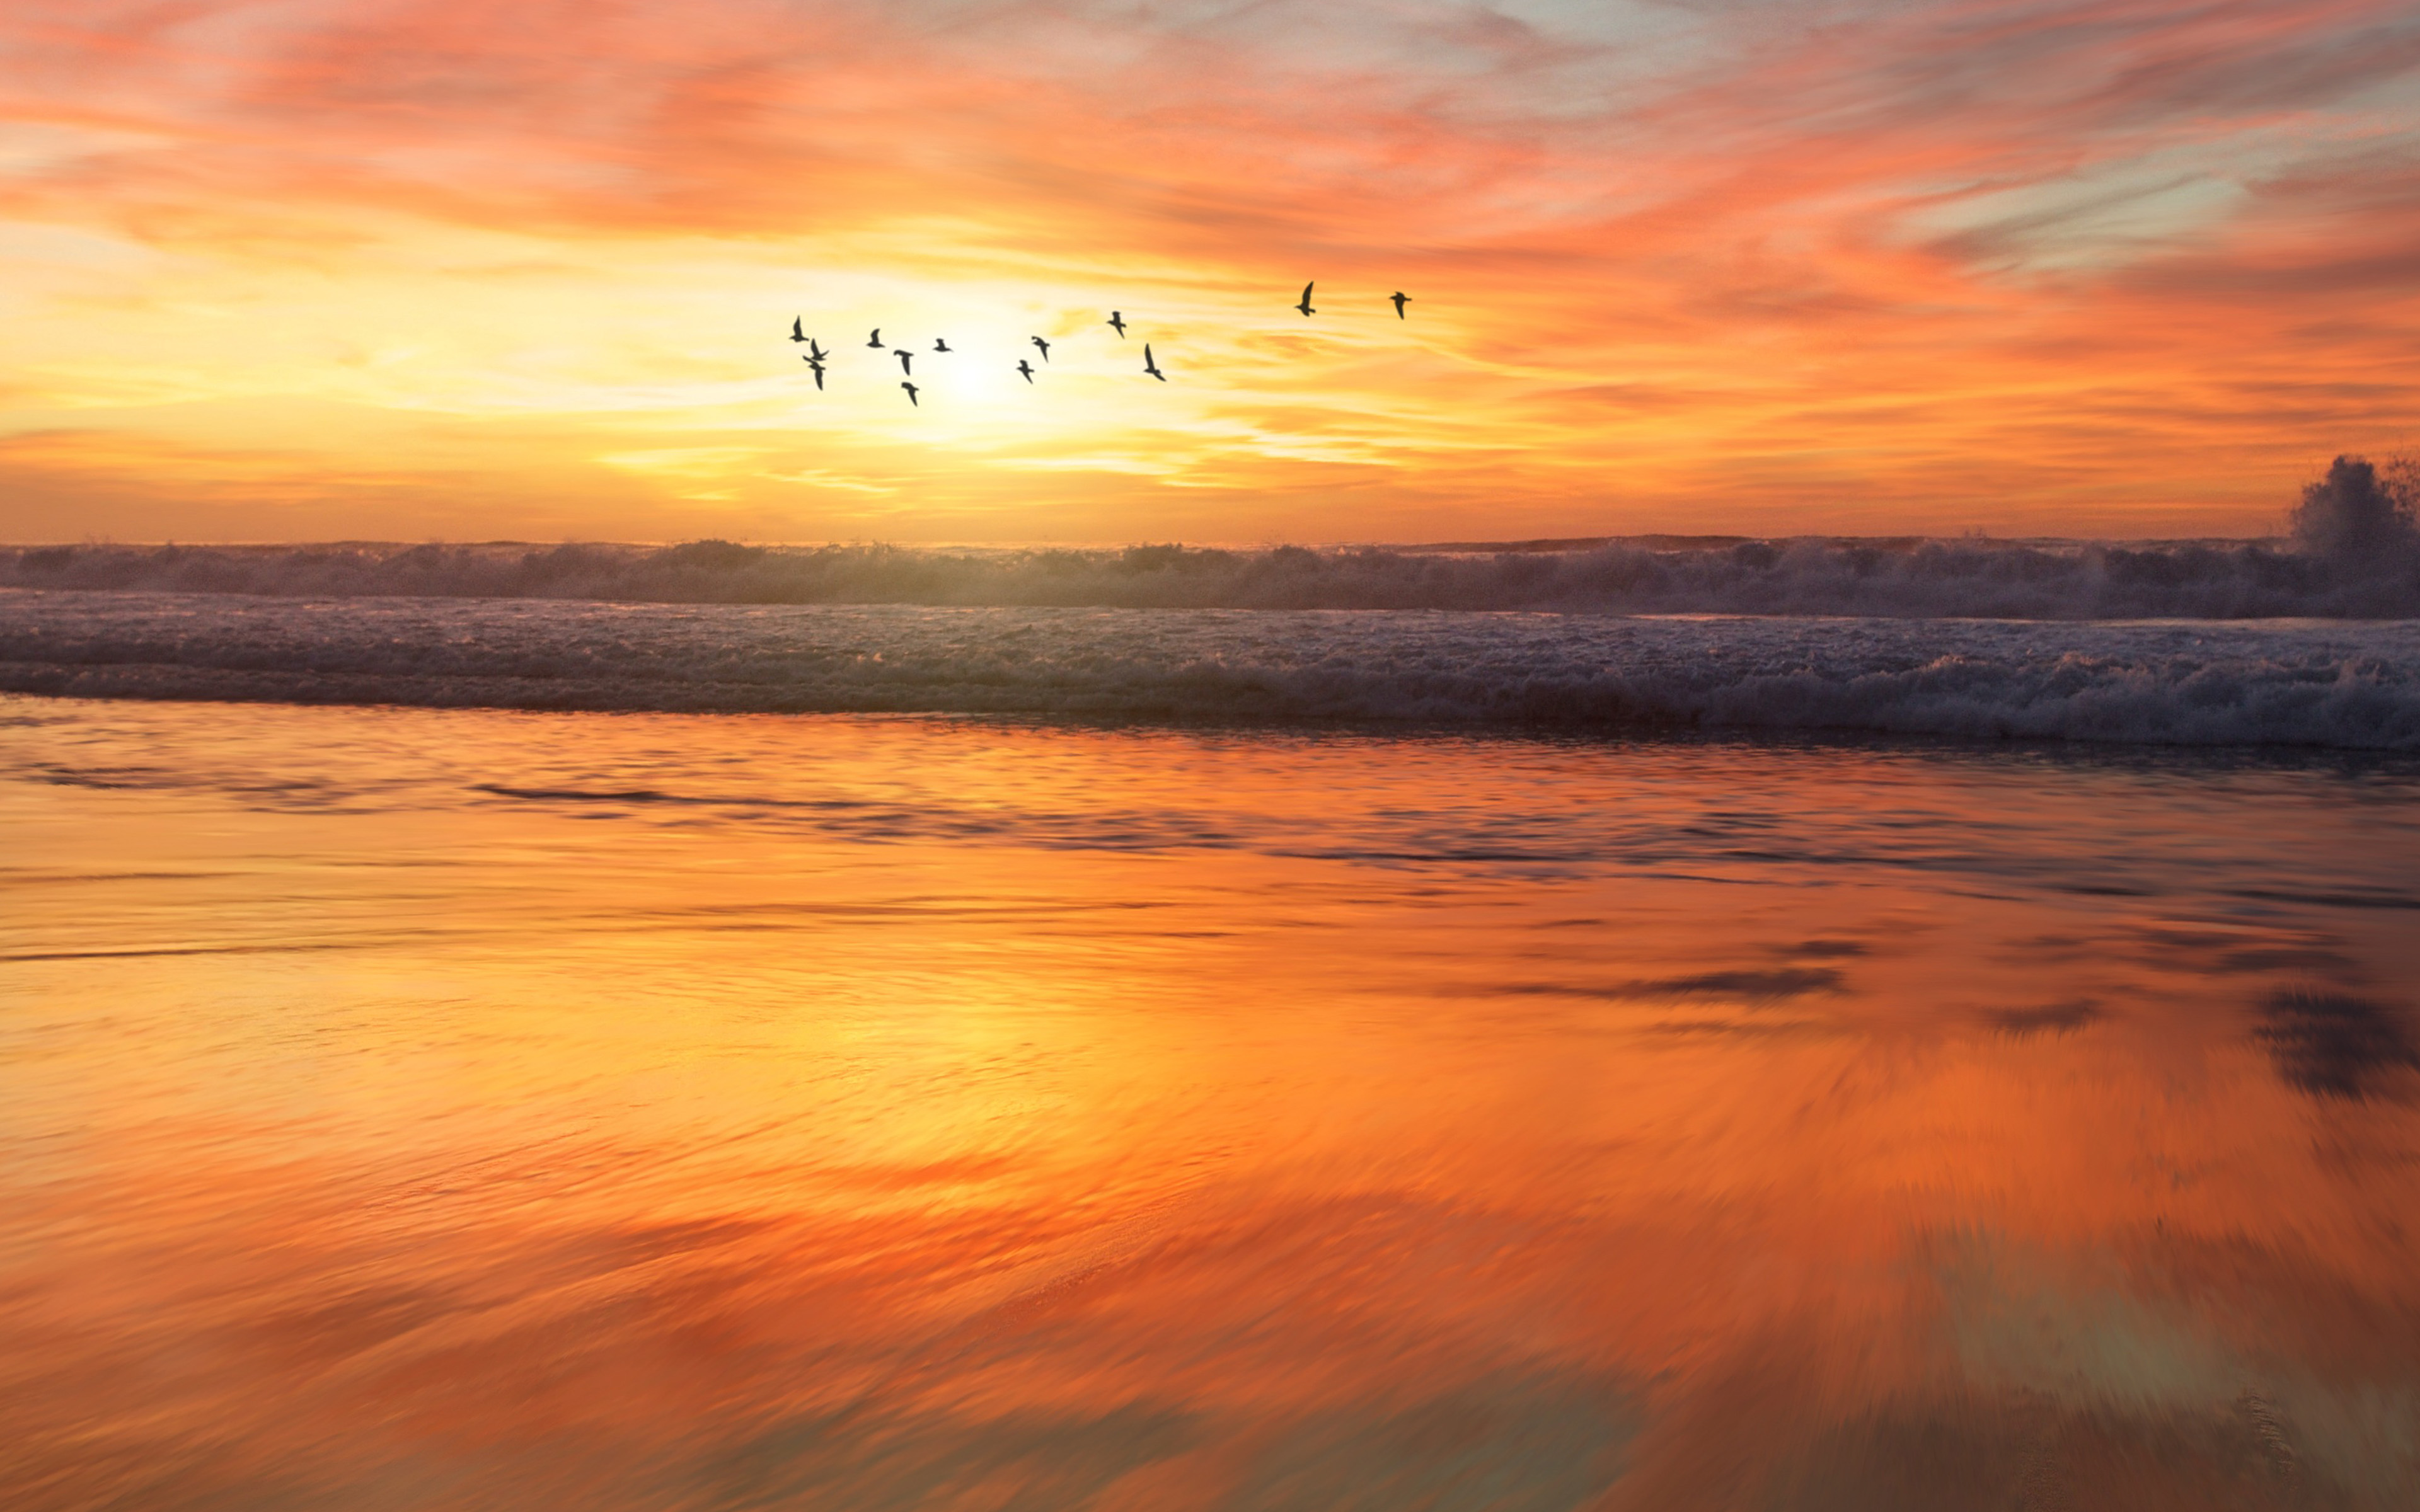 nm03-sunset-sea-nature-orange-summer-sky-bird-wallpaper